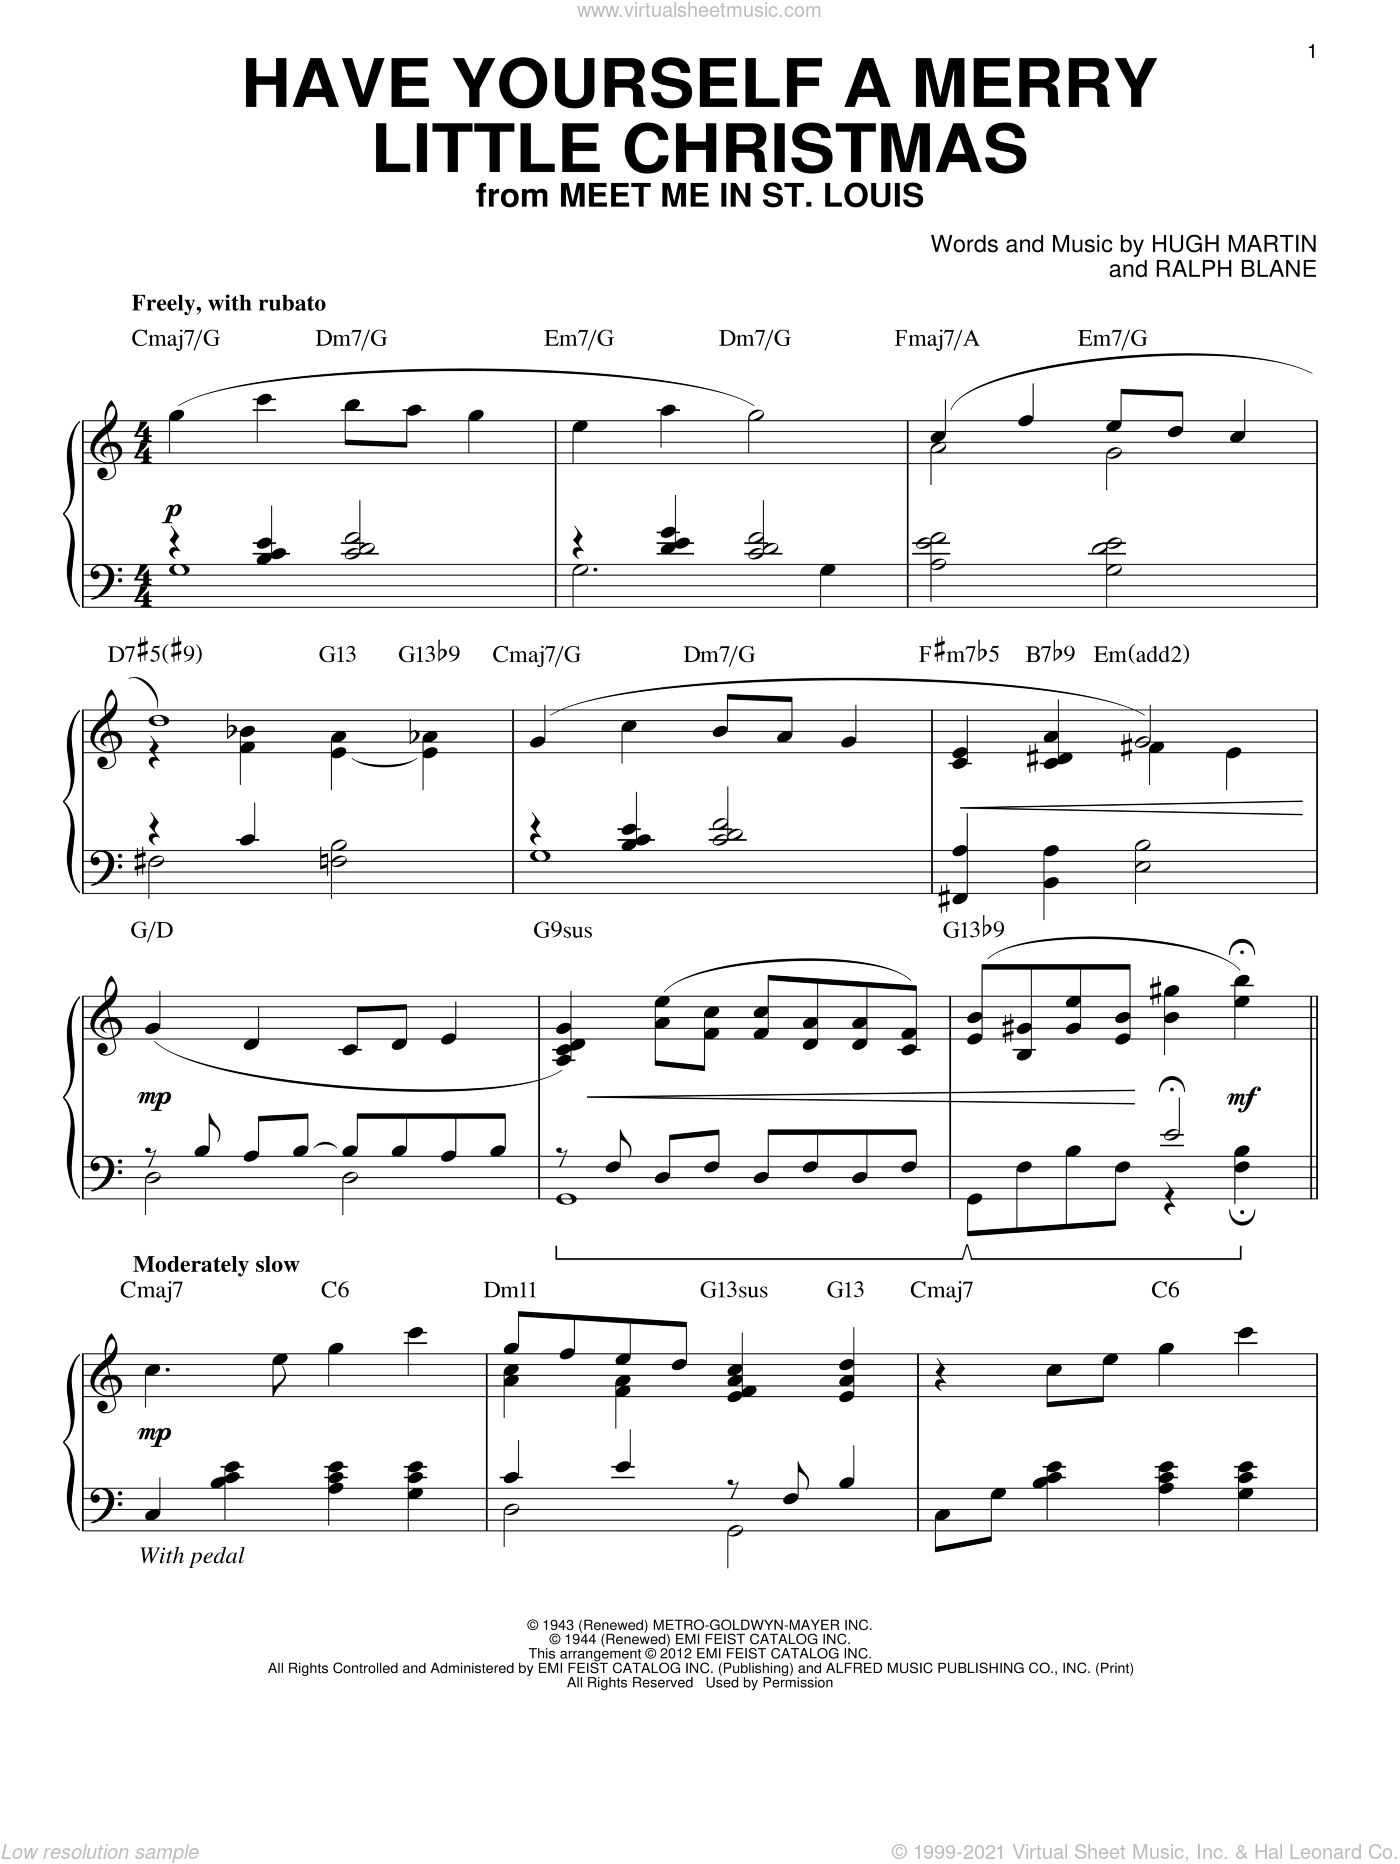 Have Yourself A Merry Little Christmas sheet music for piano solo by Hugh Martin